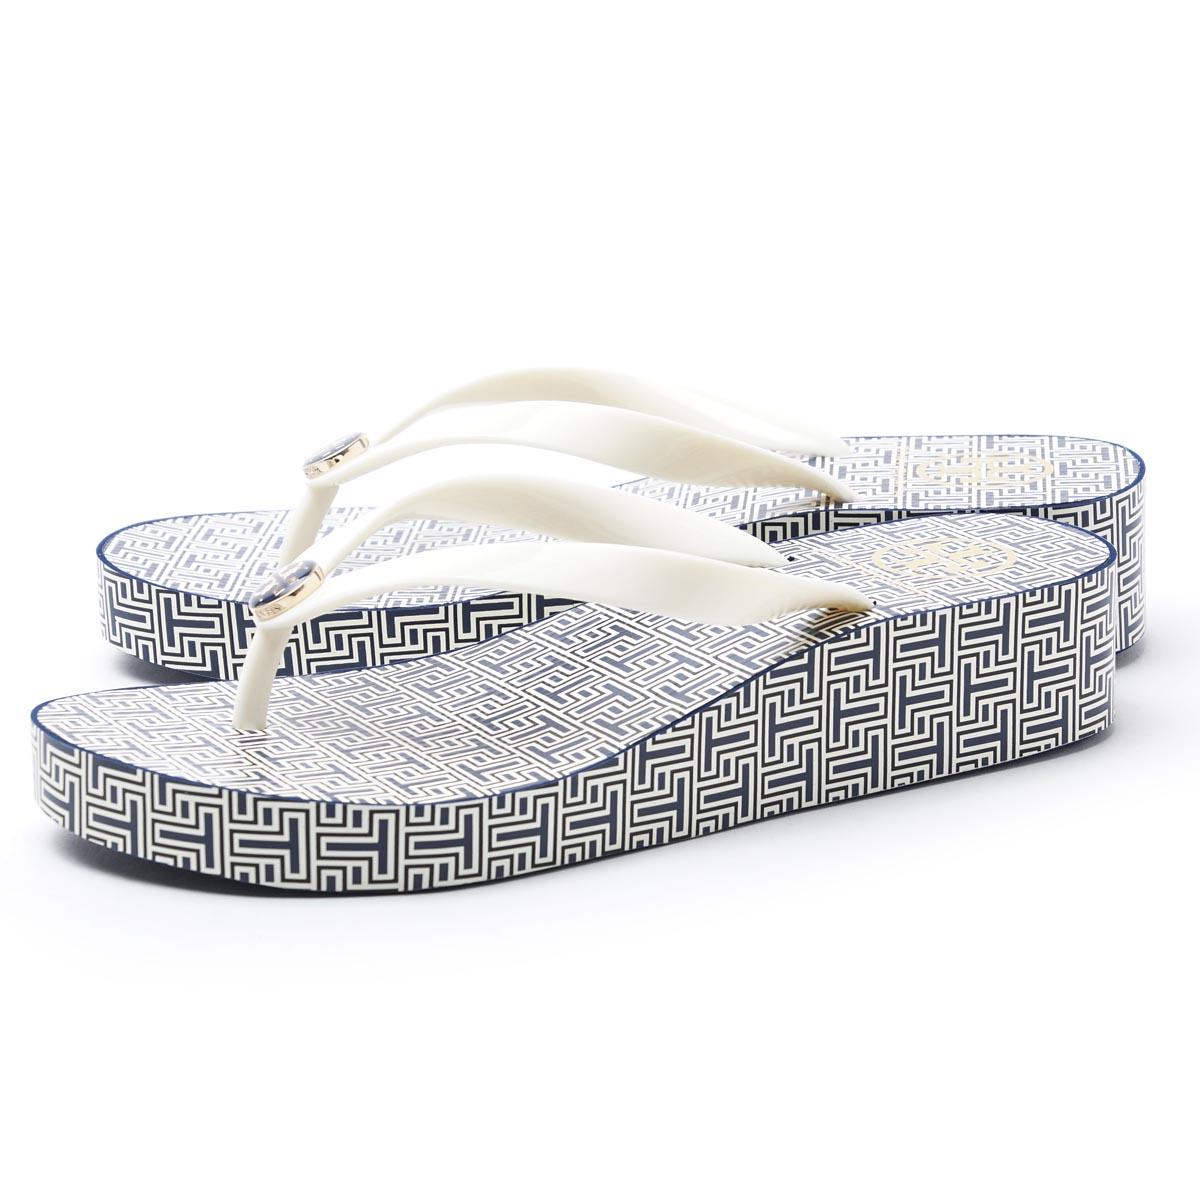 d79575947107a9 tory burch wedge flip flop spring t small new ivory. prev. next. prev